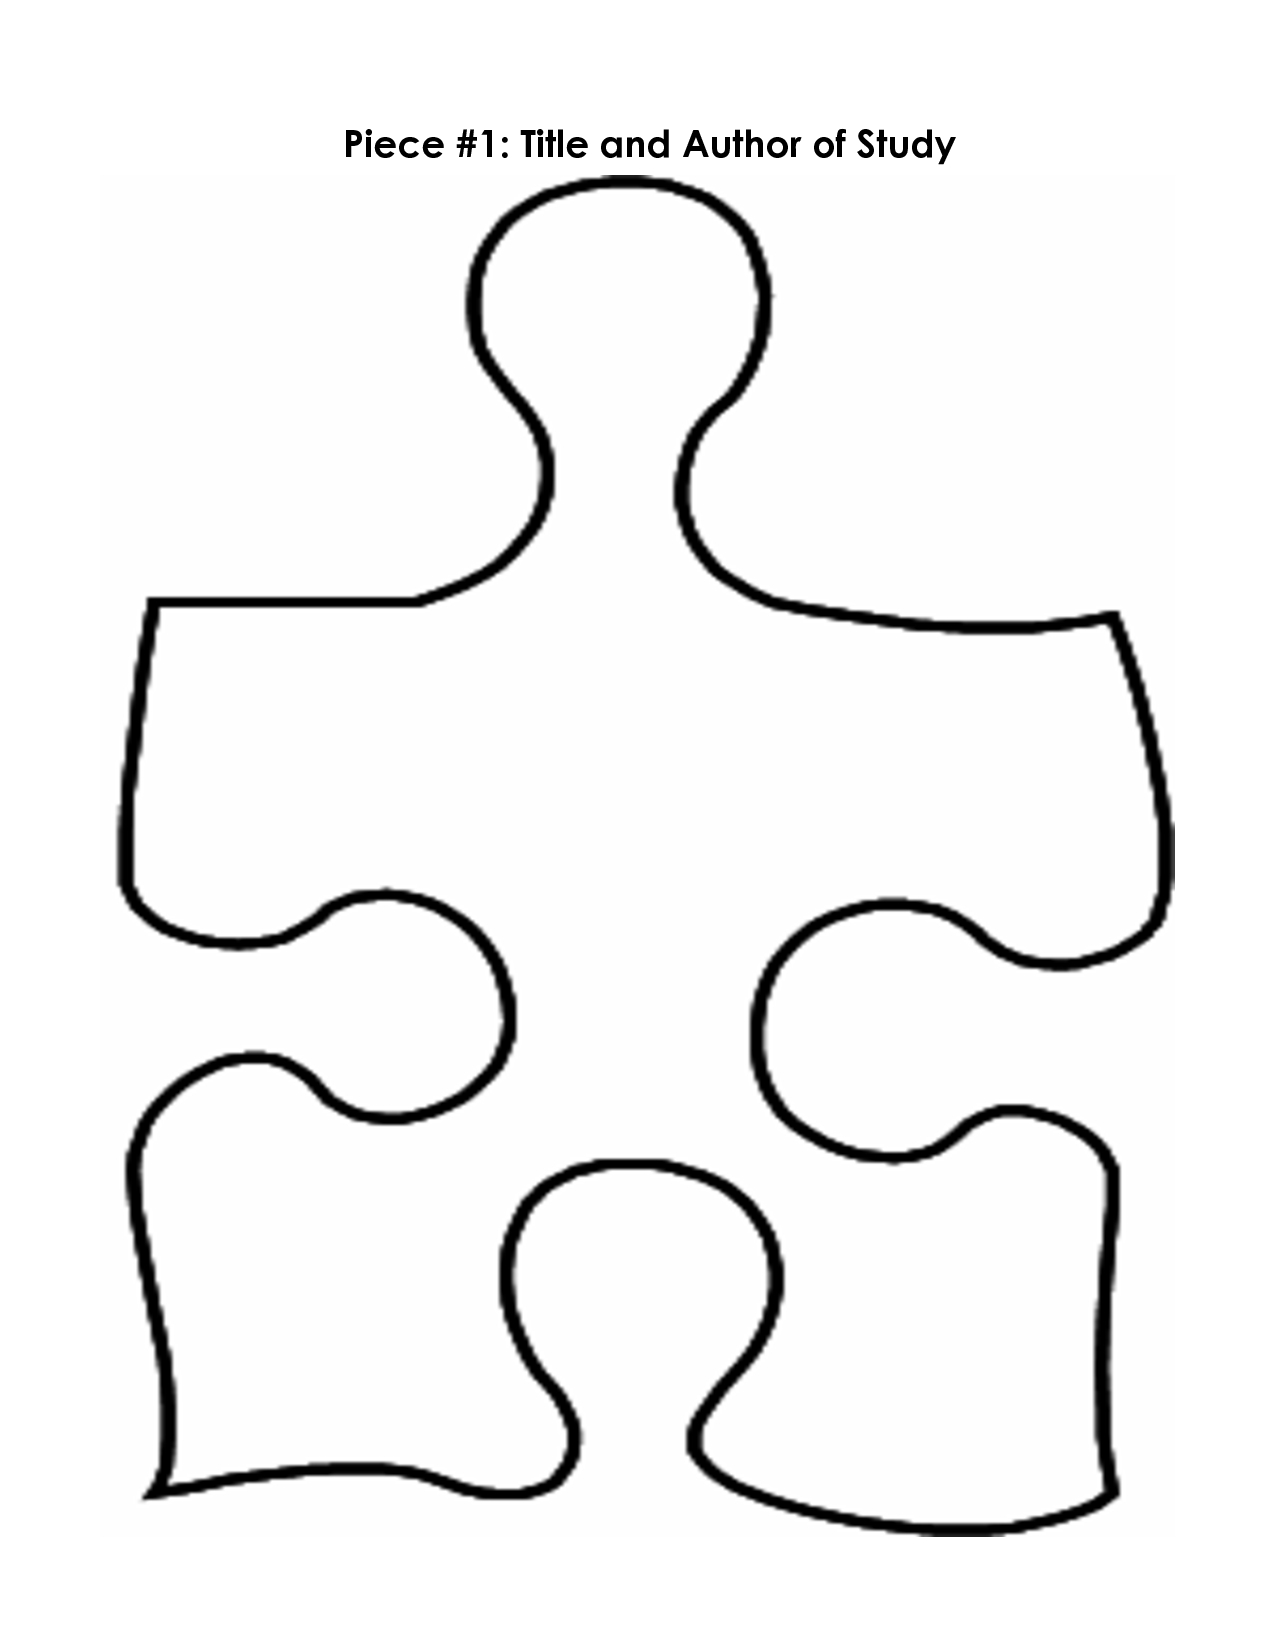 Free Large Puzzle Piece Template, Download Free Clip Art, Free Clip - Printable Puzzle Piece Coloring Pages